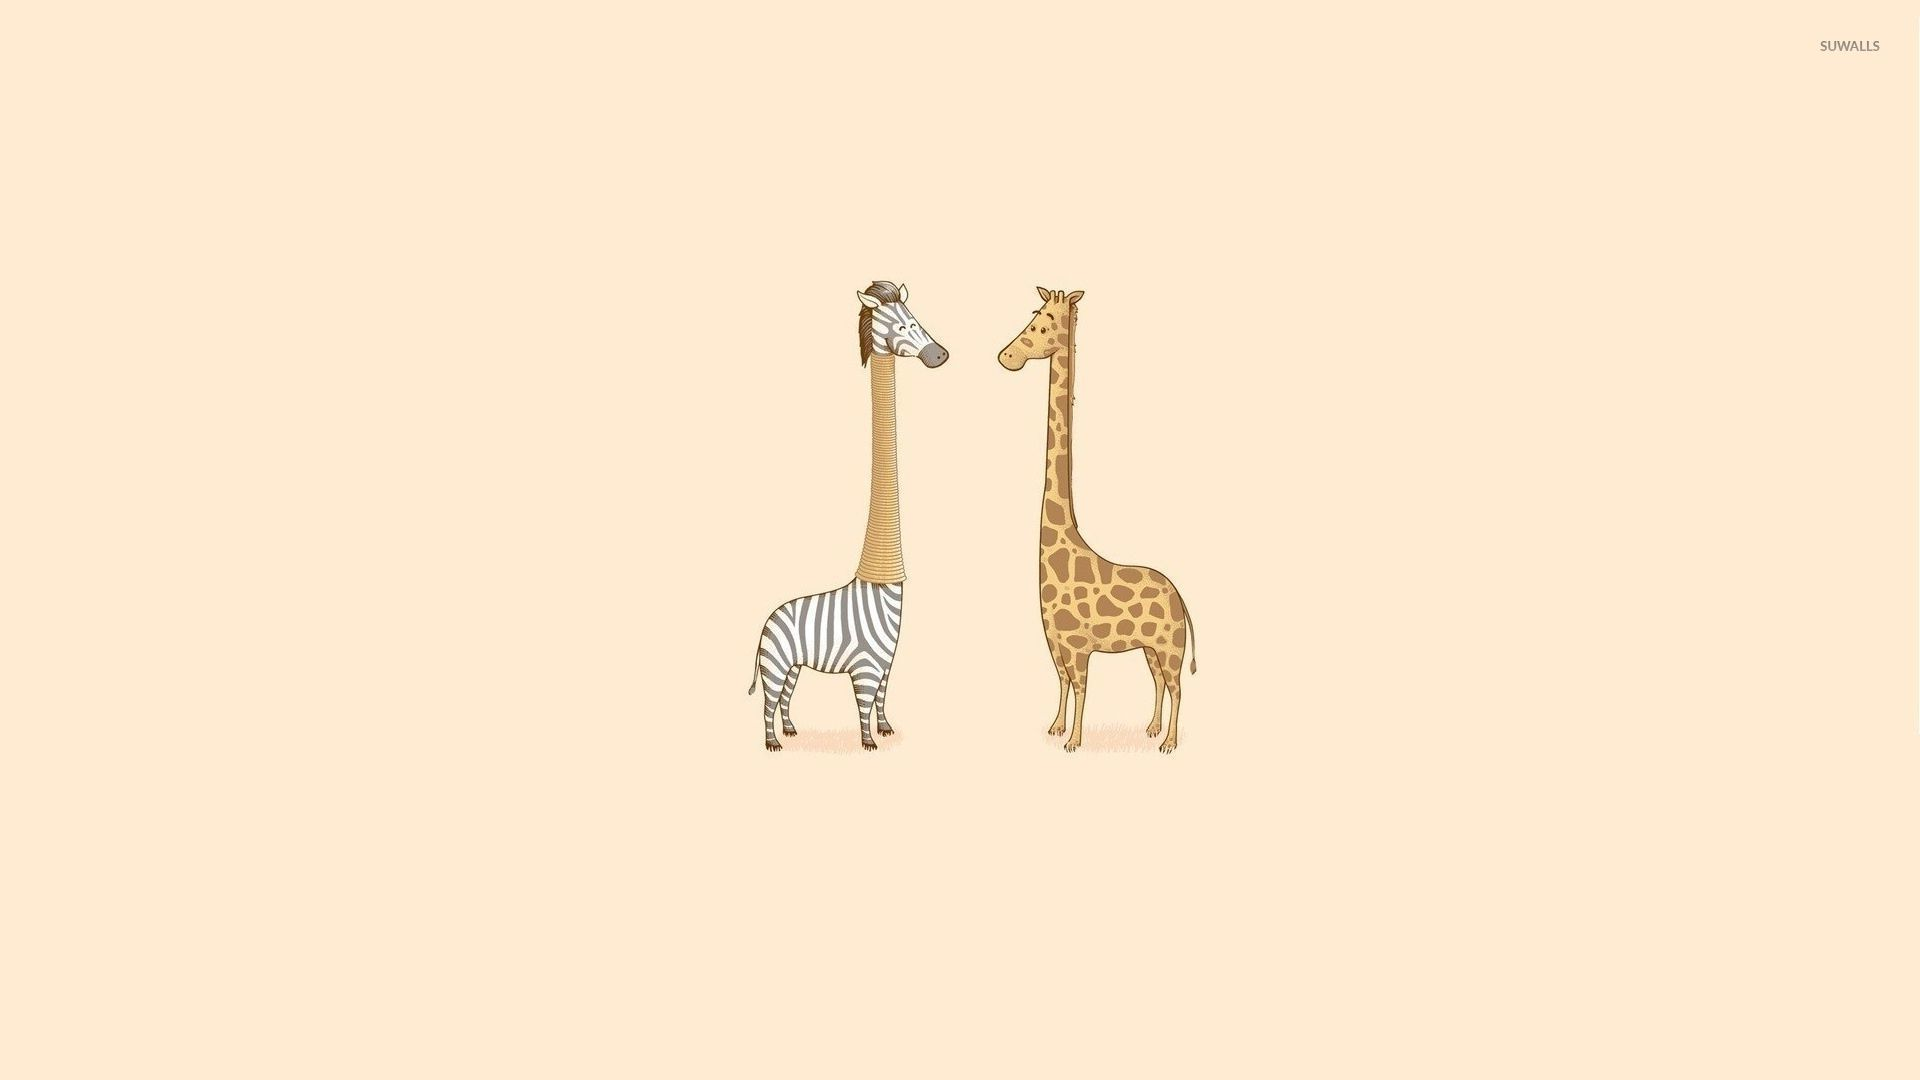 Hamilton Quotes Wallpaper For A Laptop Giraffe And Zebra Being Friends Wallpaper Funny